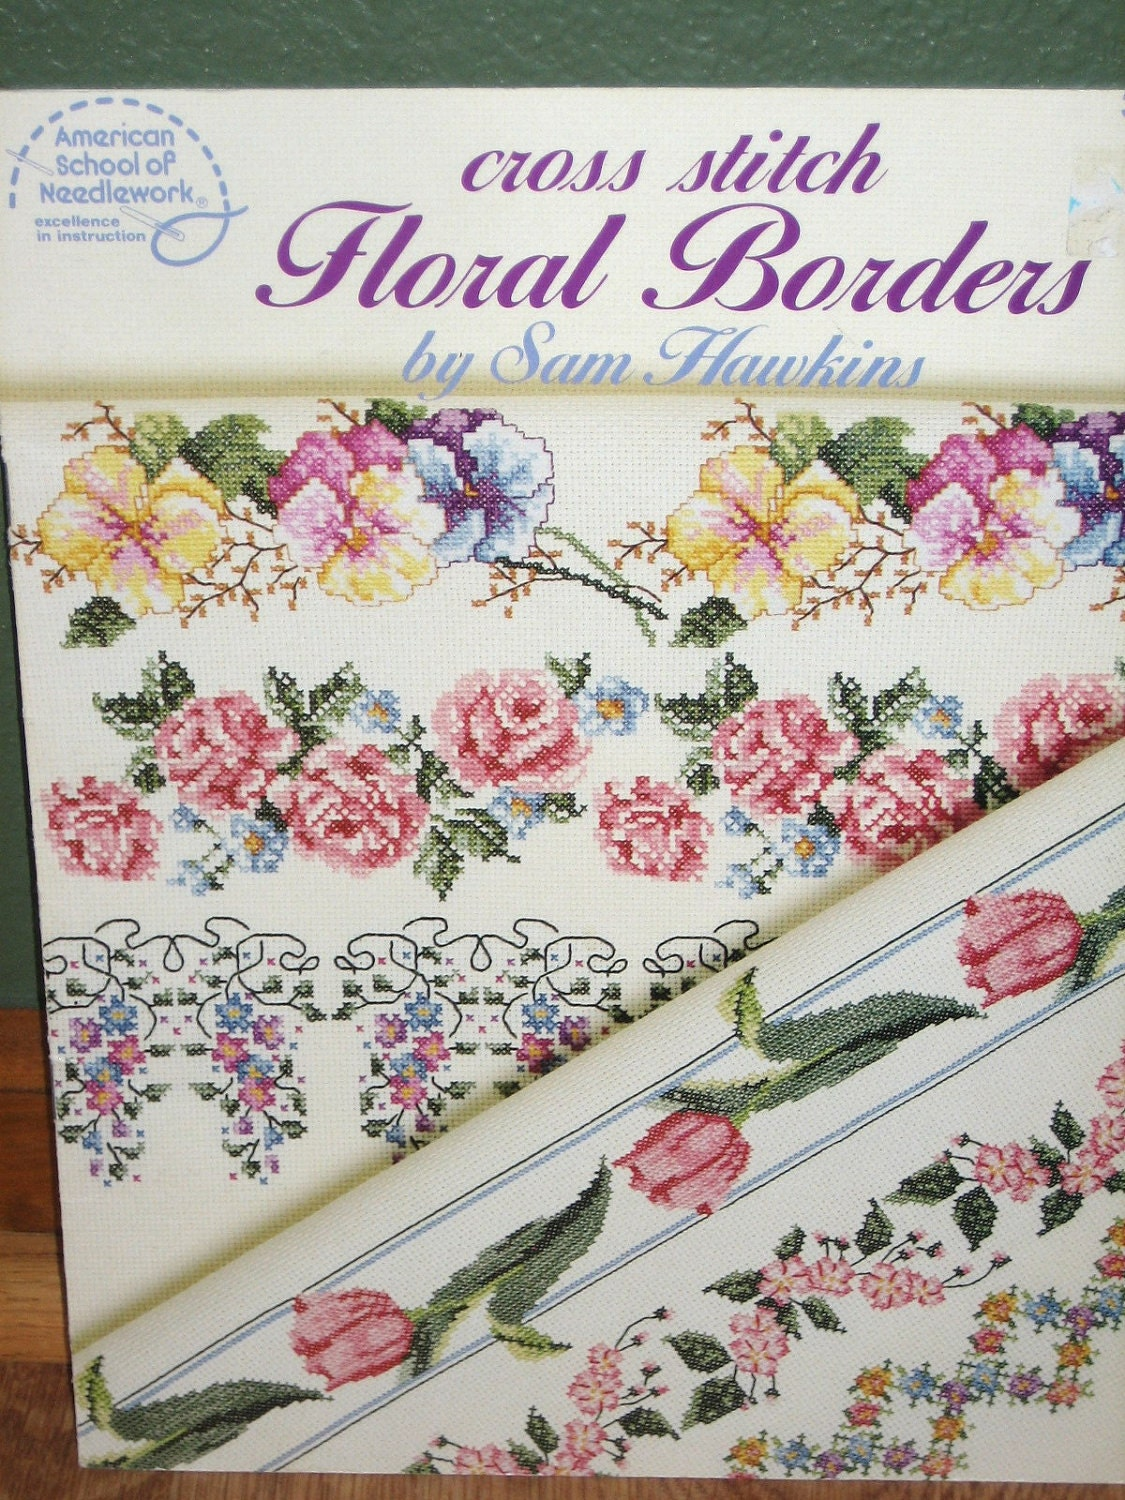 Cross stitch floral borders booklet by allstitchedout2 on etsy